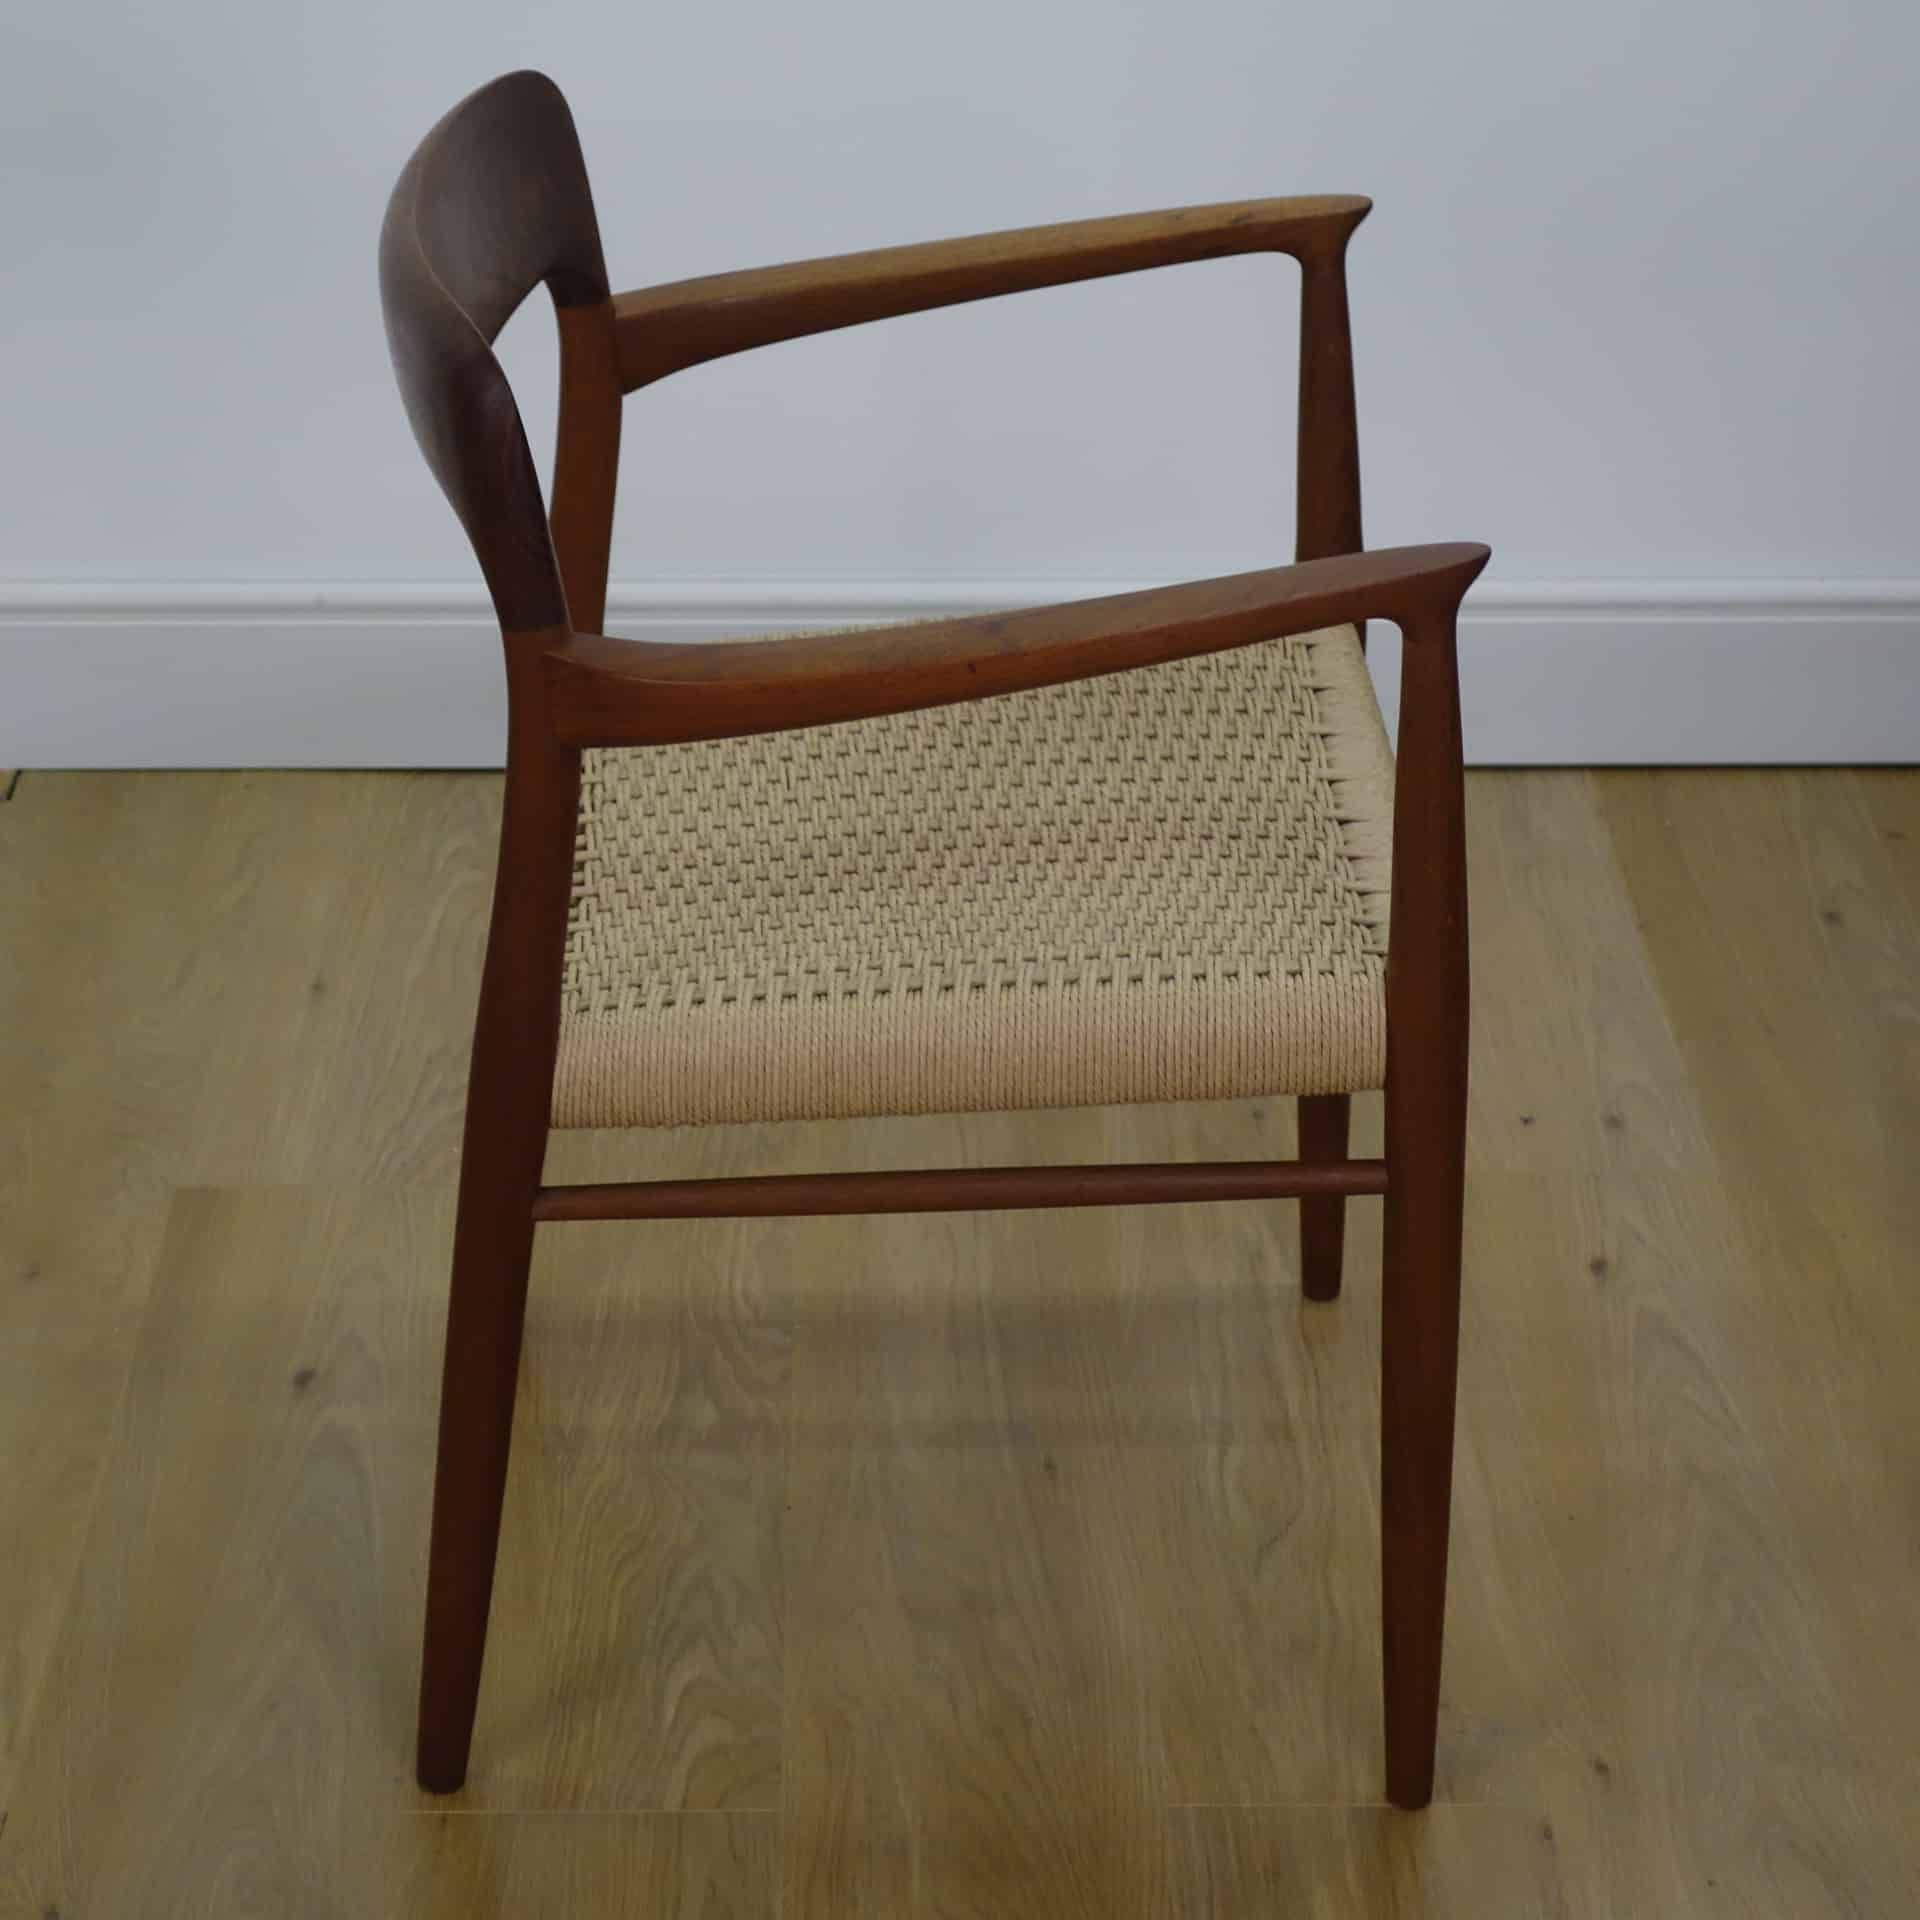 Set of 4 teak model 75 chairs by Niels Moller